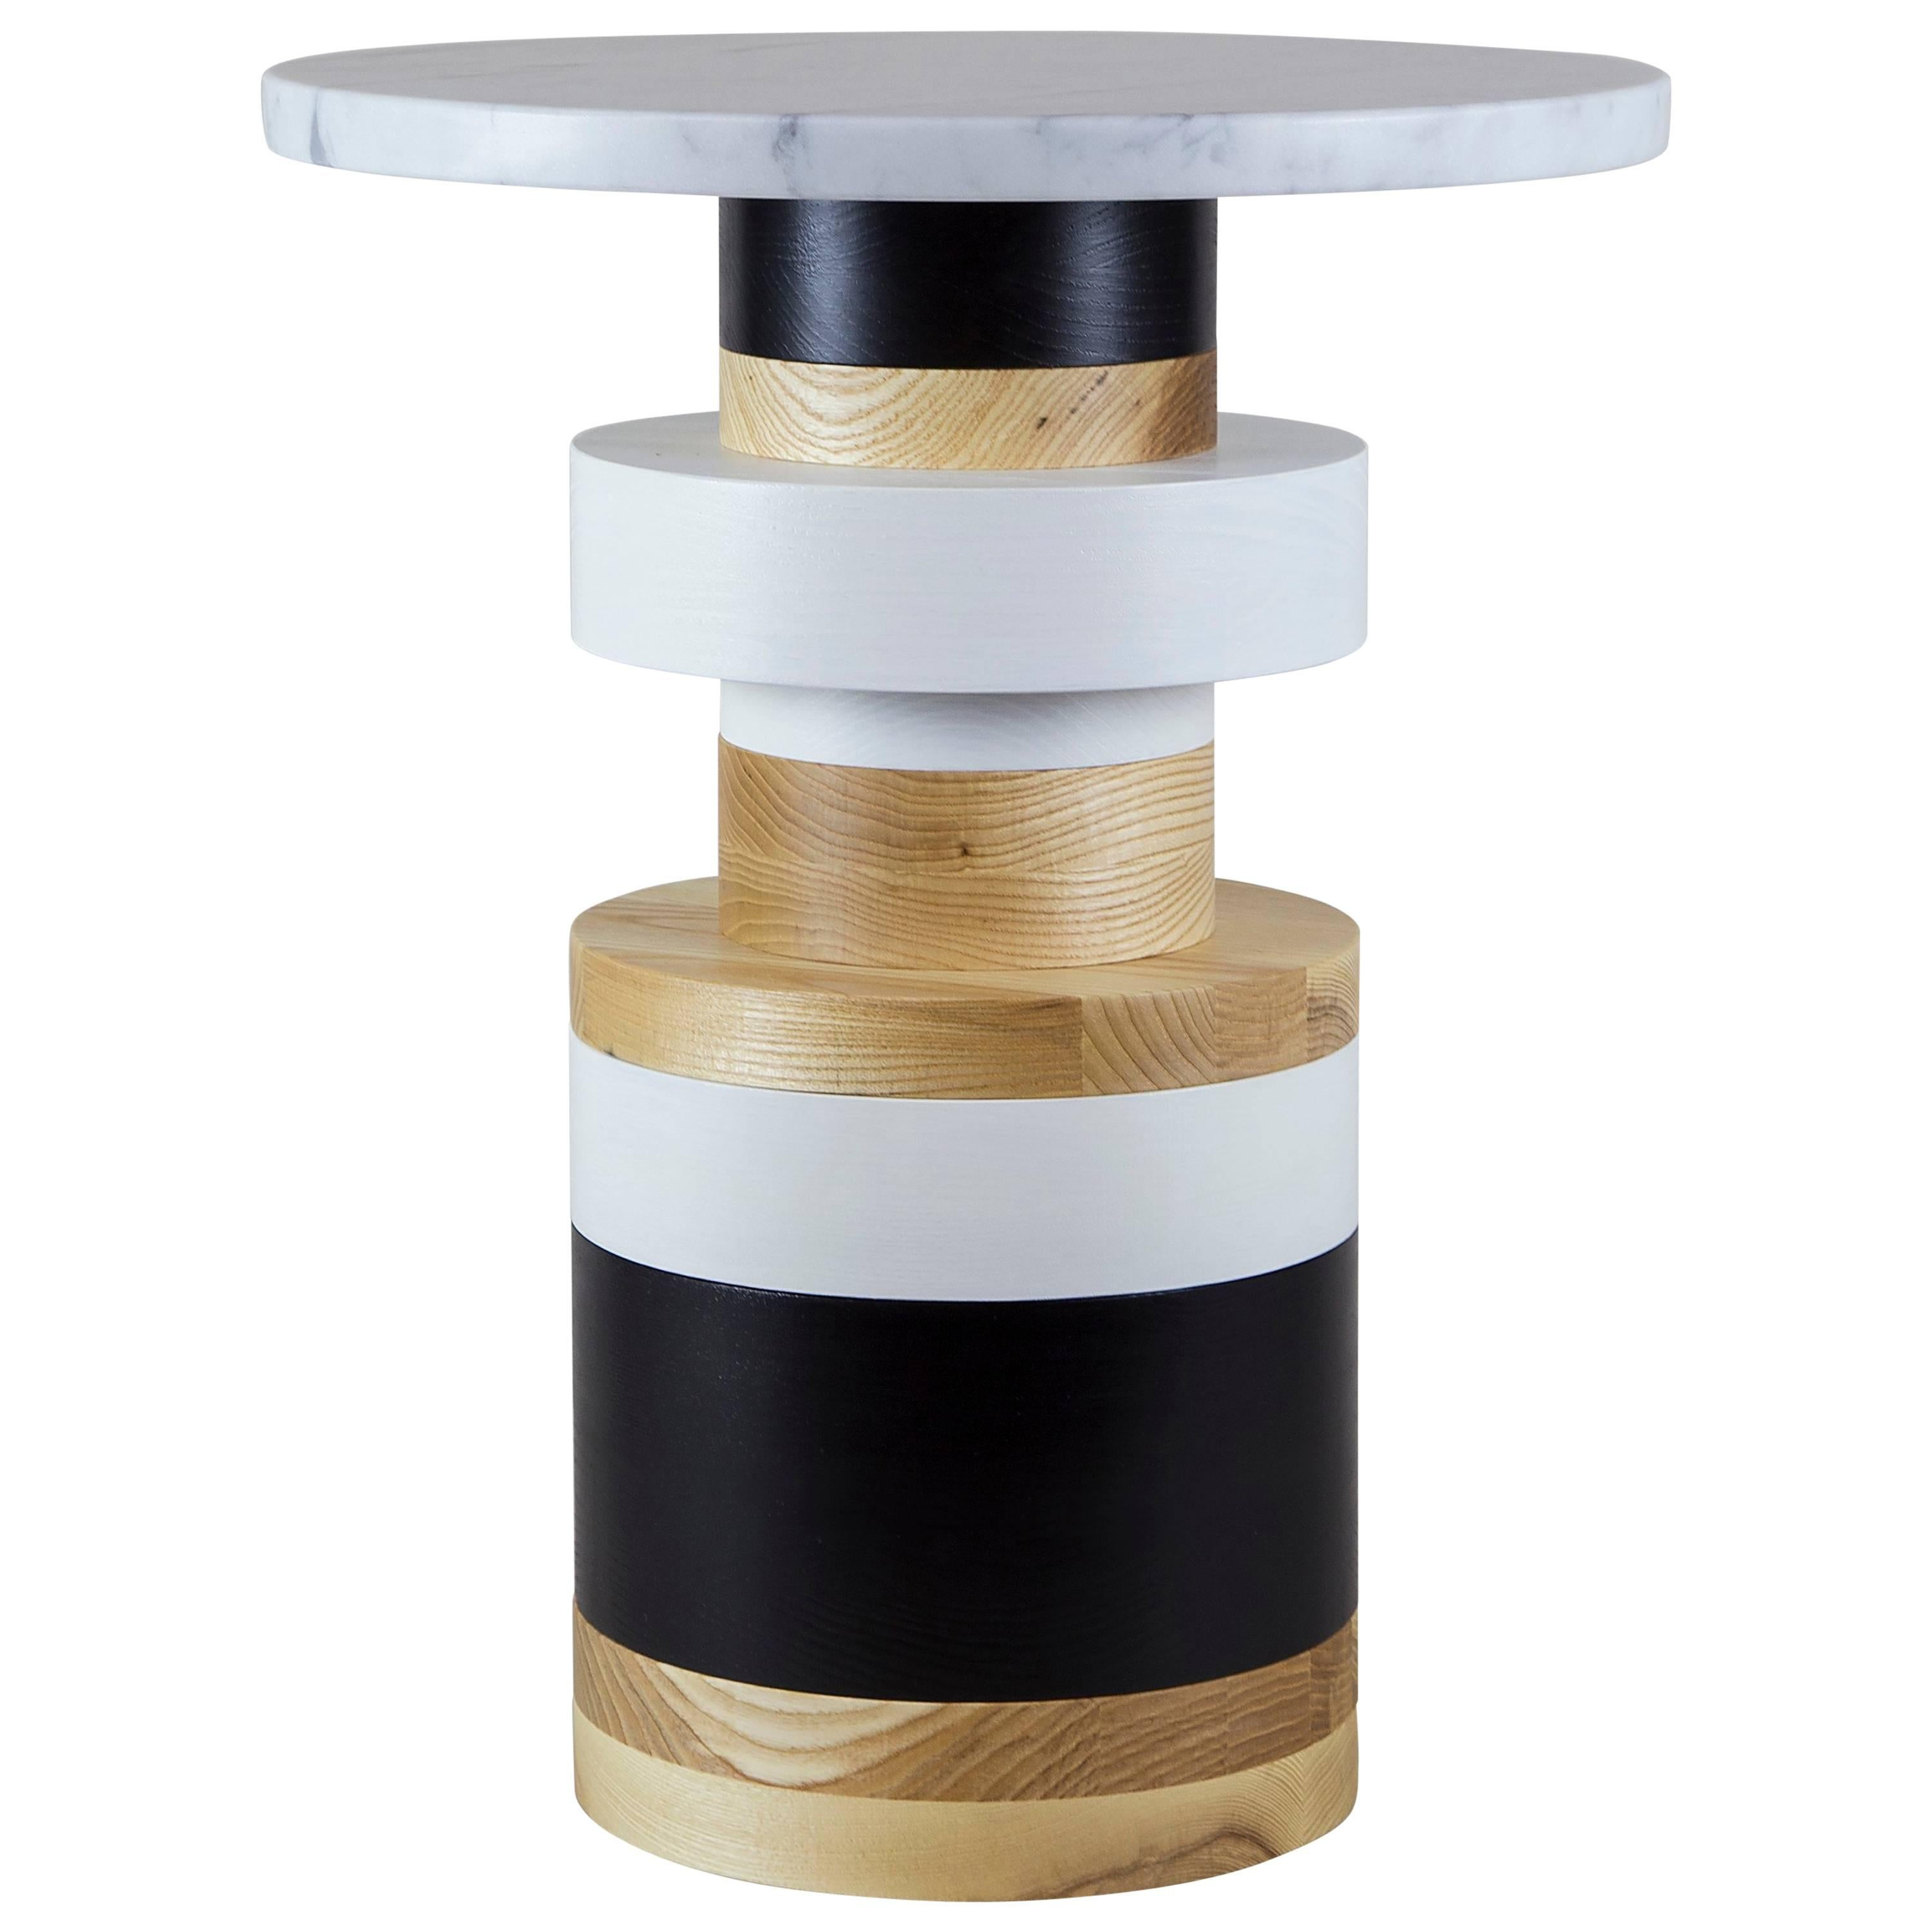 Customizable Medium Sass Side Table from Souda, Small Marble Top, Made to Order